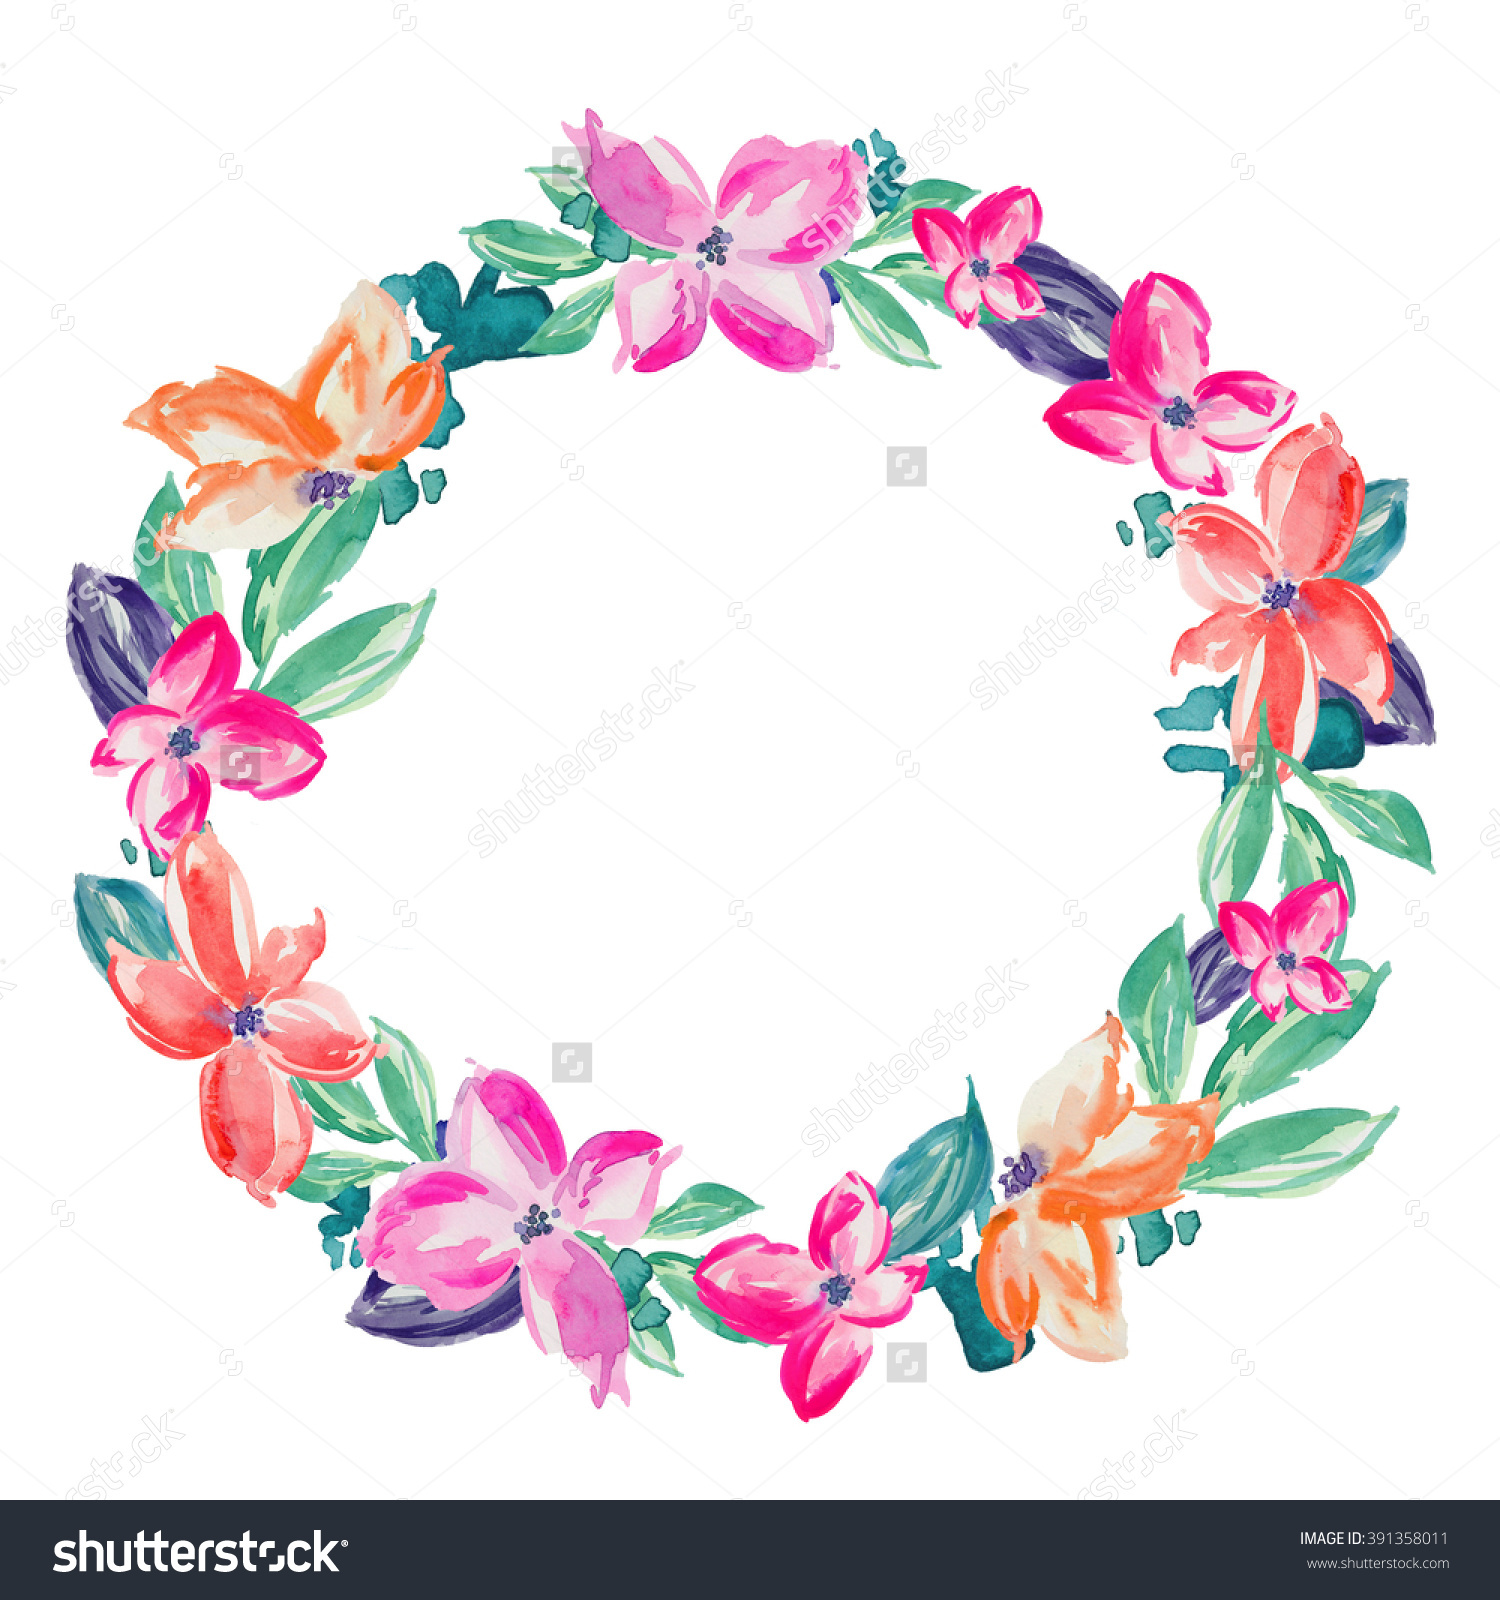 Watercolor Flower Wreath Background Round Flower Stock.